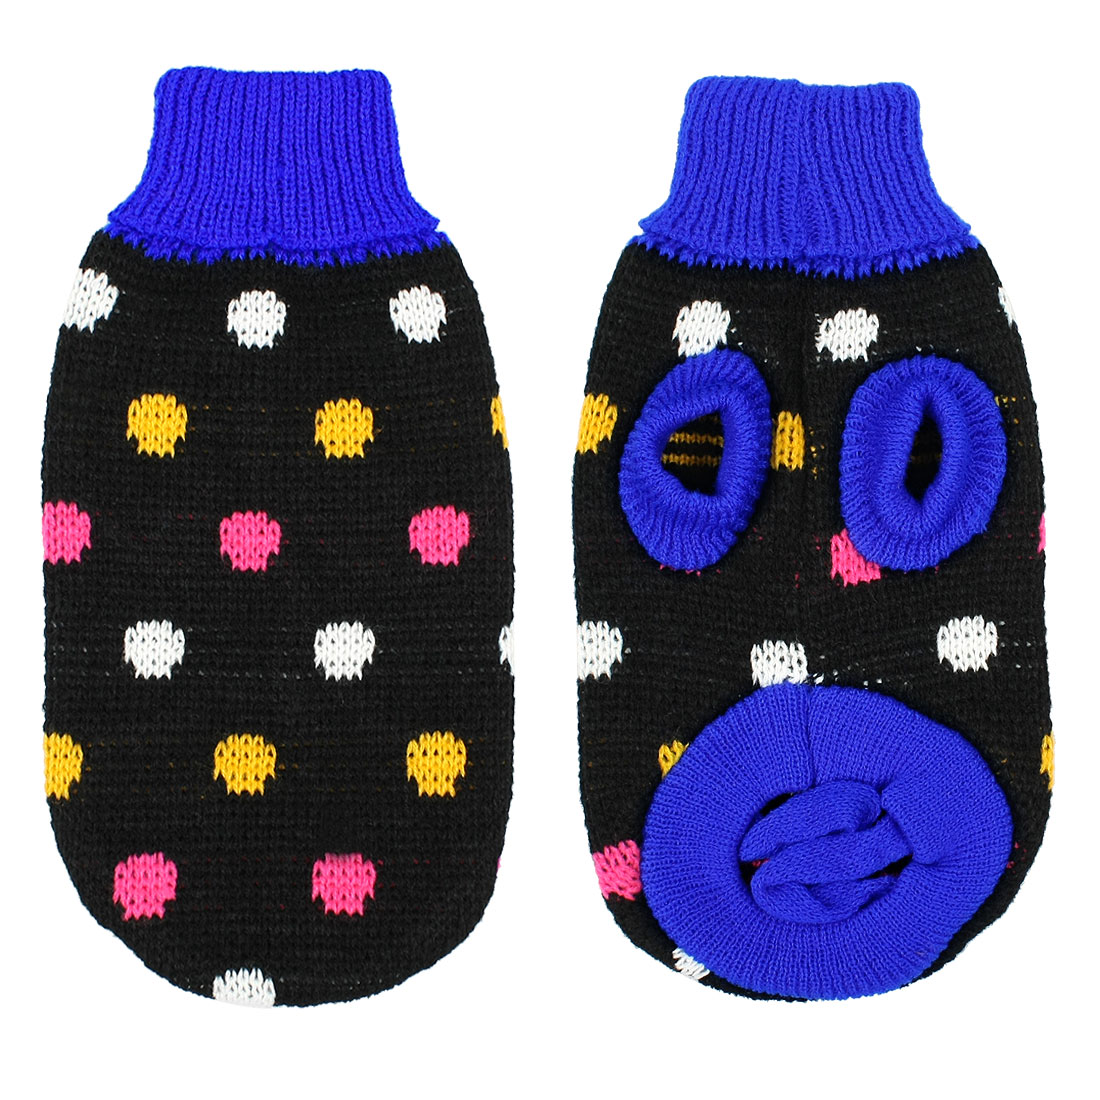 Pet Dog Turtleneck Sweater Coat Multicolor Dot Clothes Black Blue XS